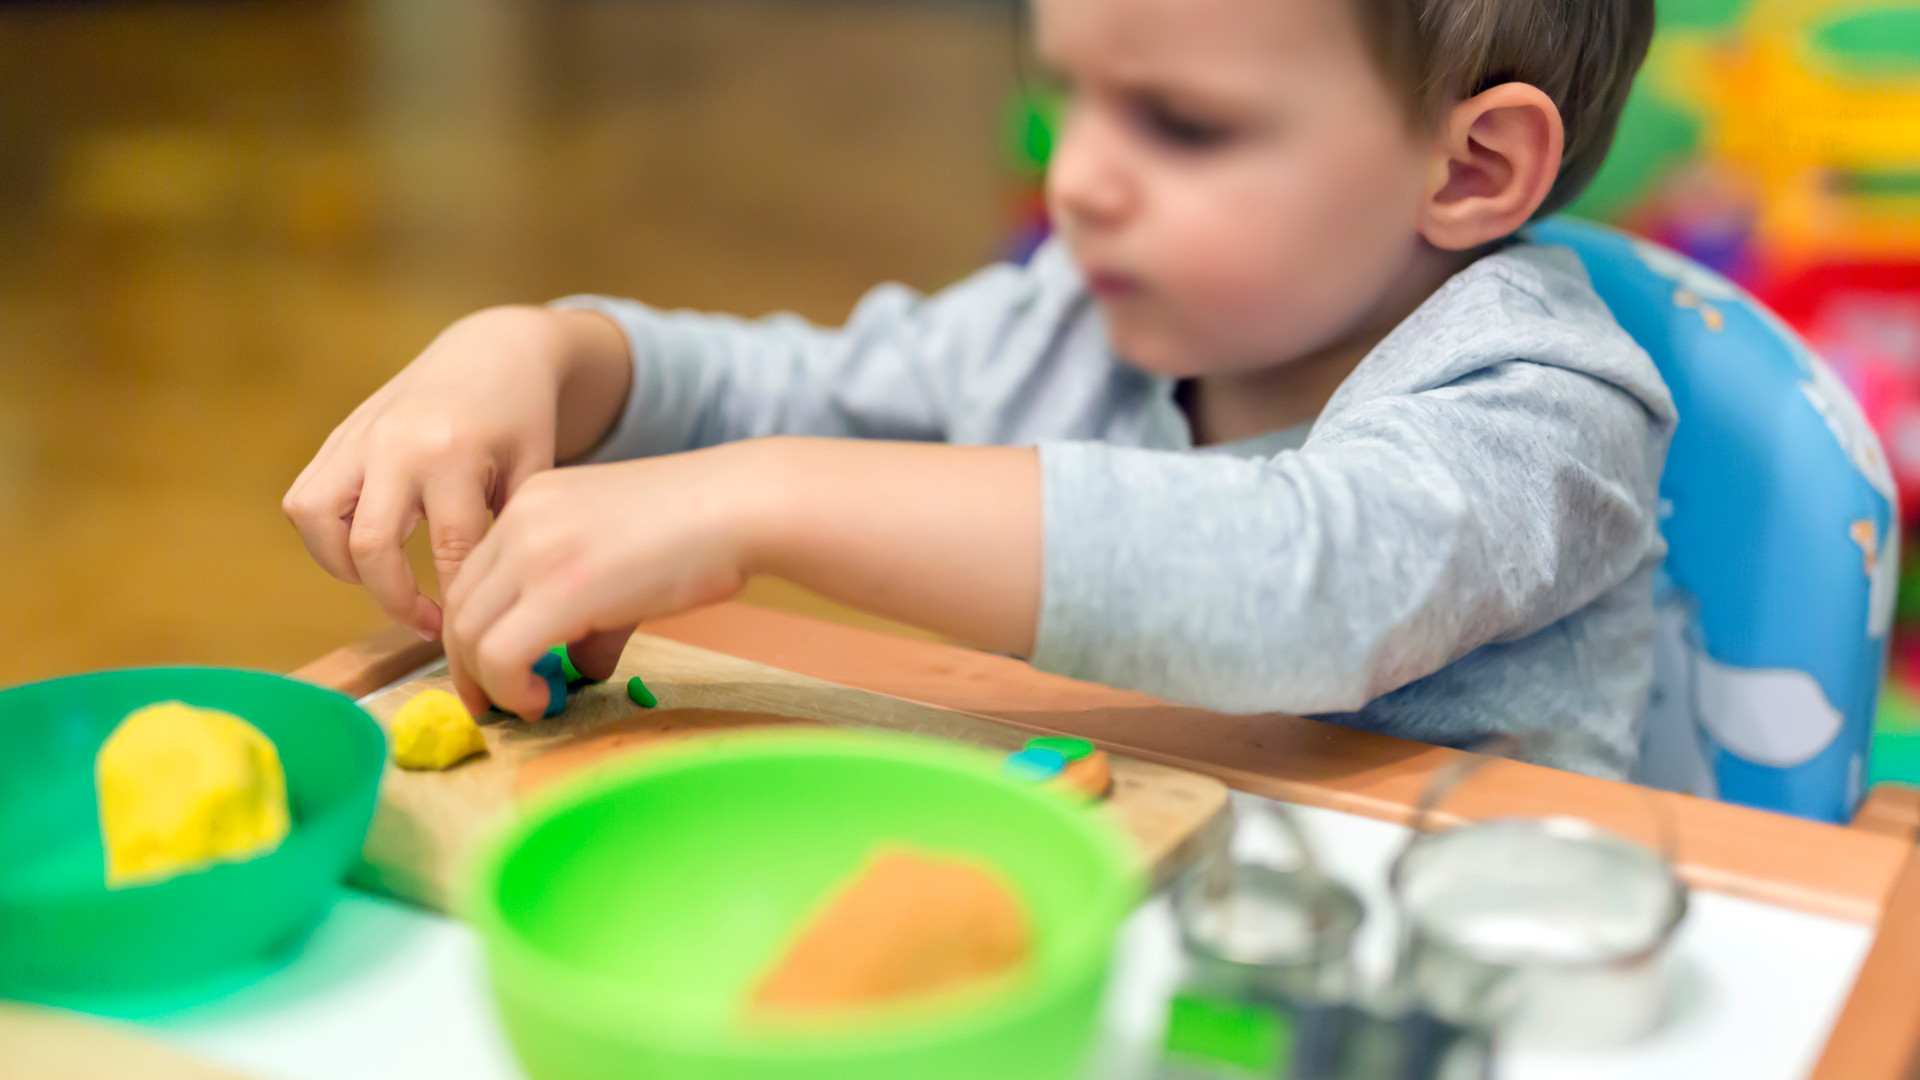 little-boy-working-with-clay-WDQE4HW.jpg